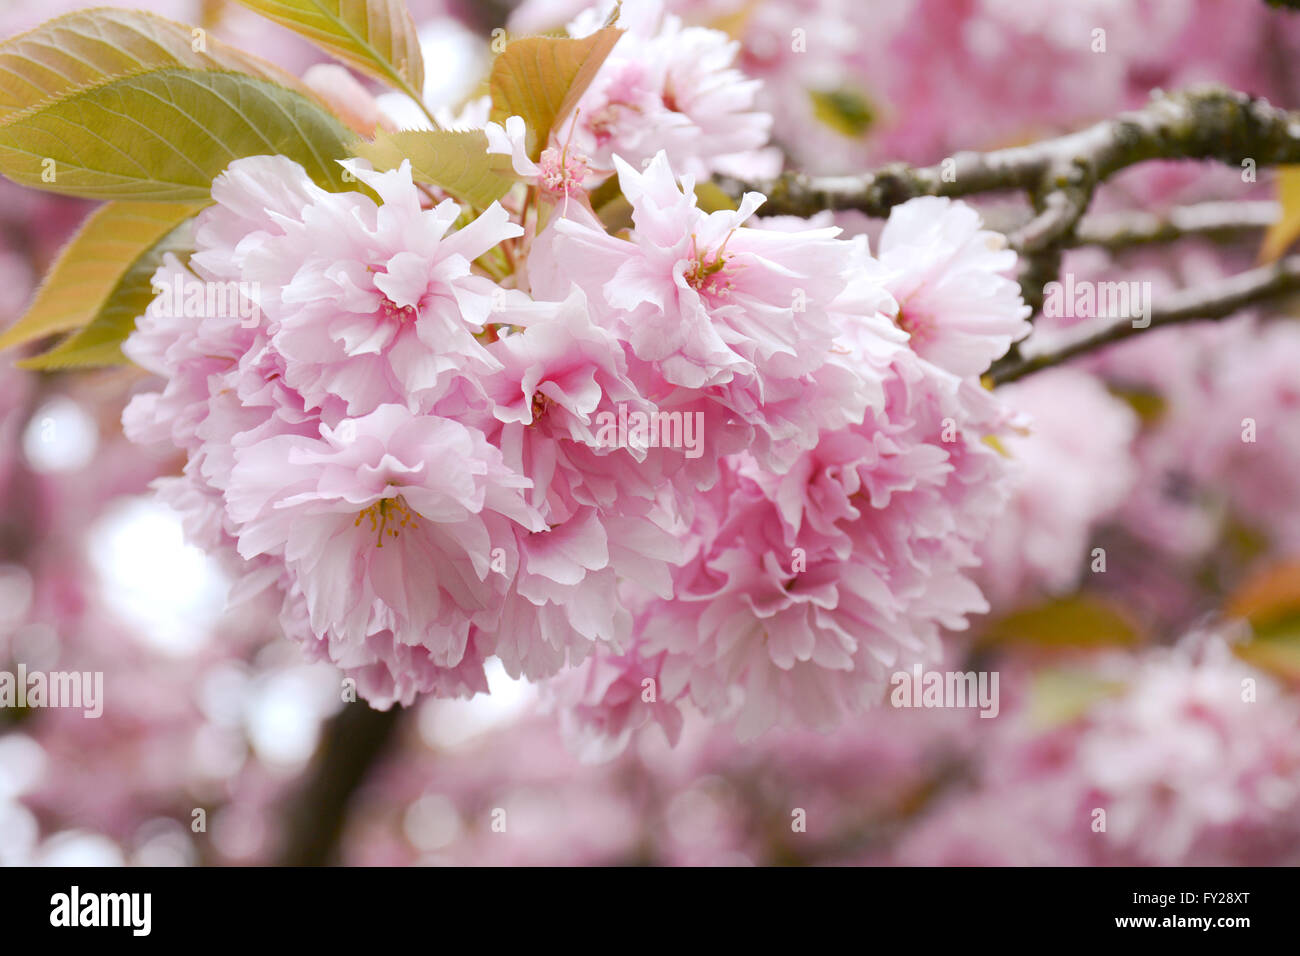 Fluffy Pink Cherry Blossom Flowers On Branches On The Tree In